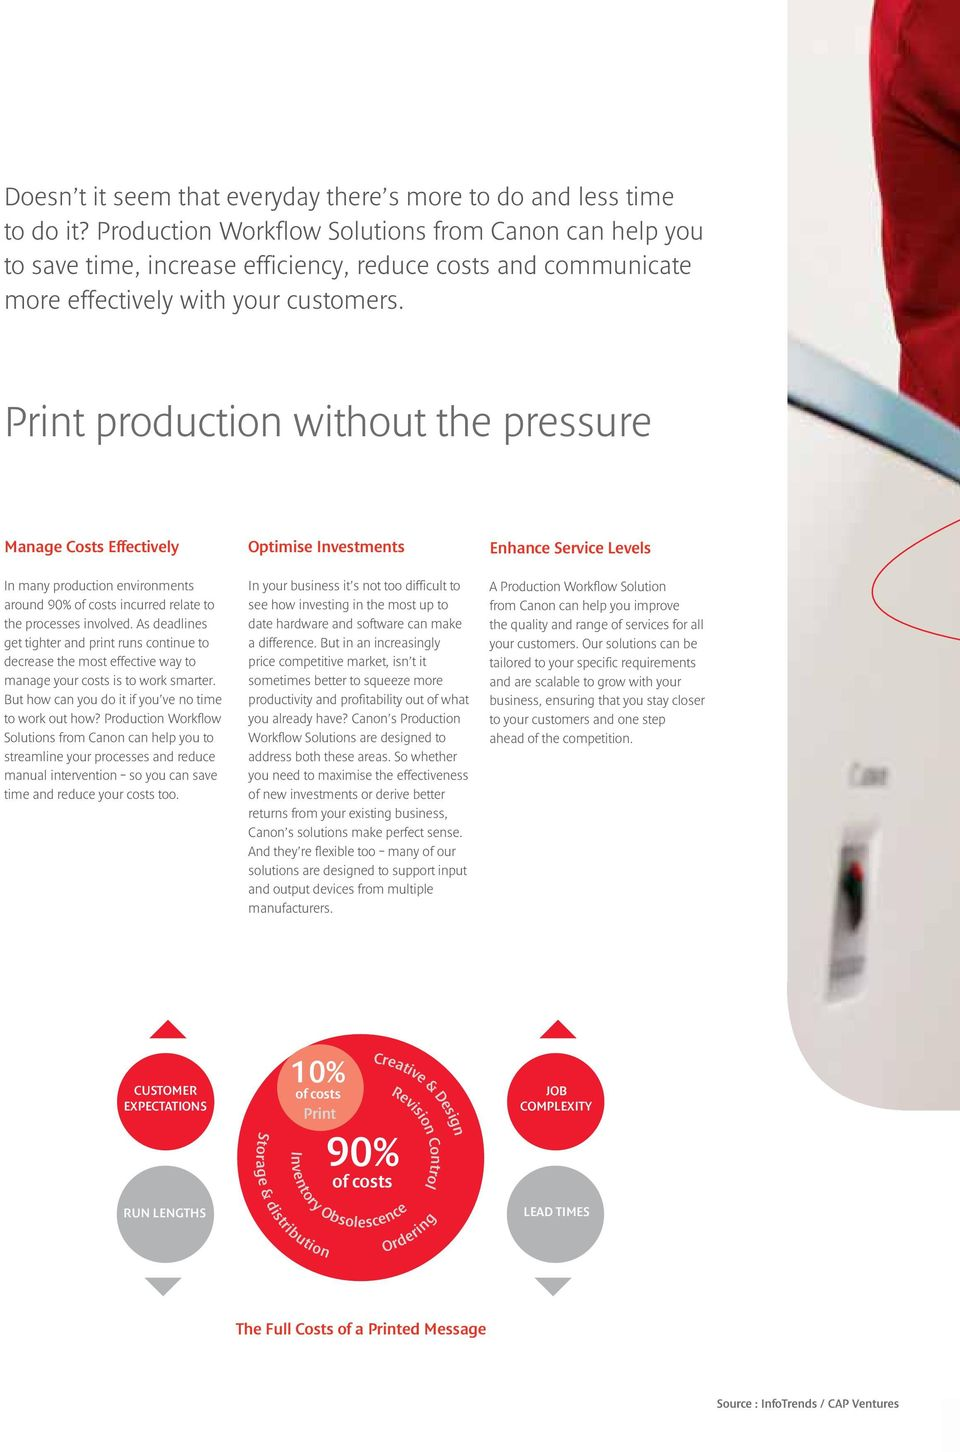 Print production without the pressure Manage Costs Effectively In many production environments around 90% of costs incurred relate to the processes involved.